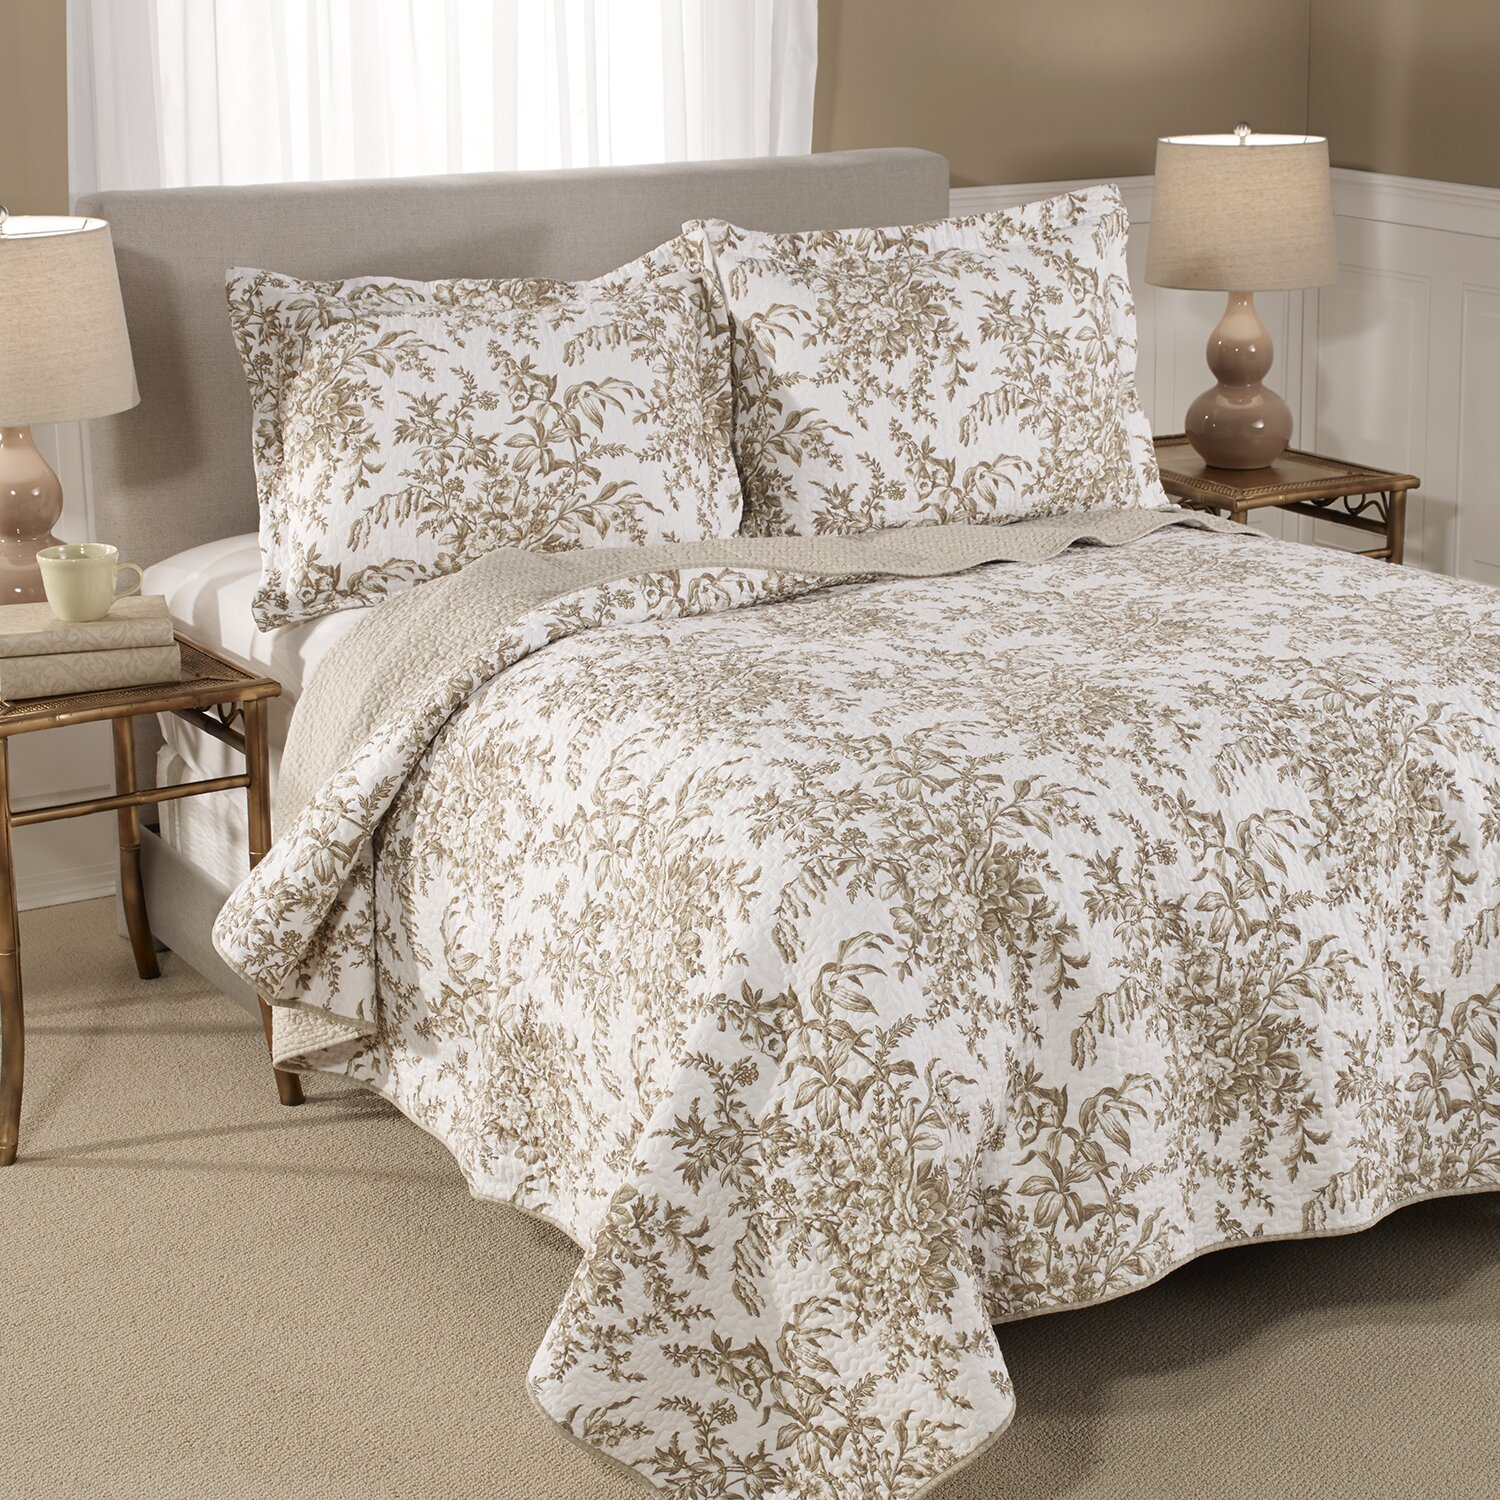 Laura Ashley Bedford Blue Quilt Laura Ashley Home Bedford